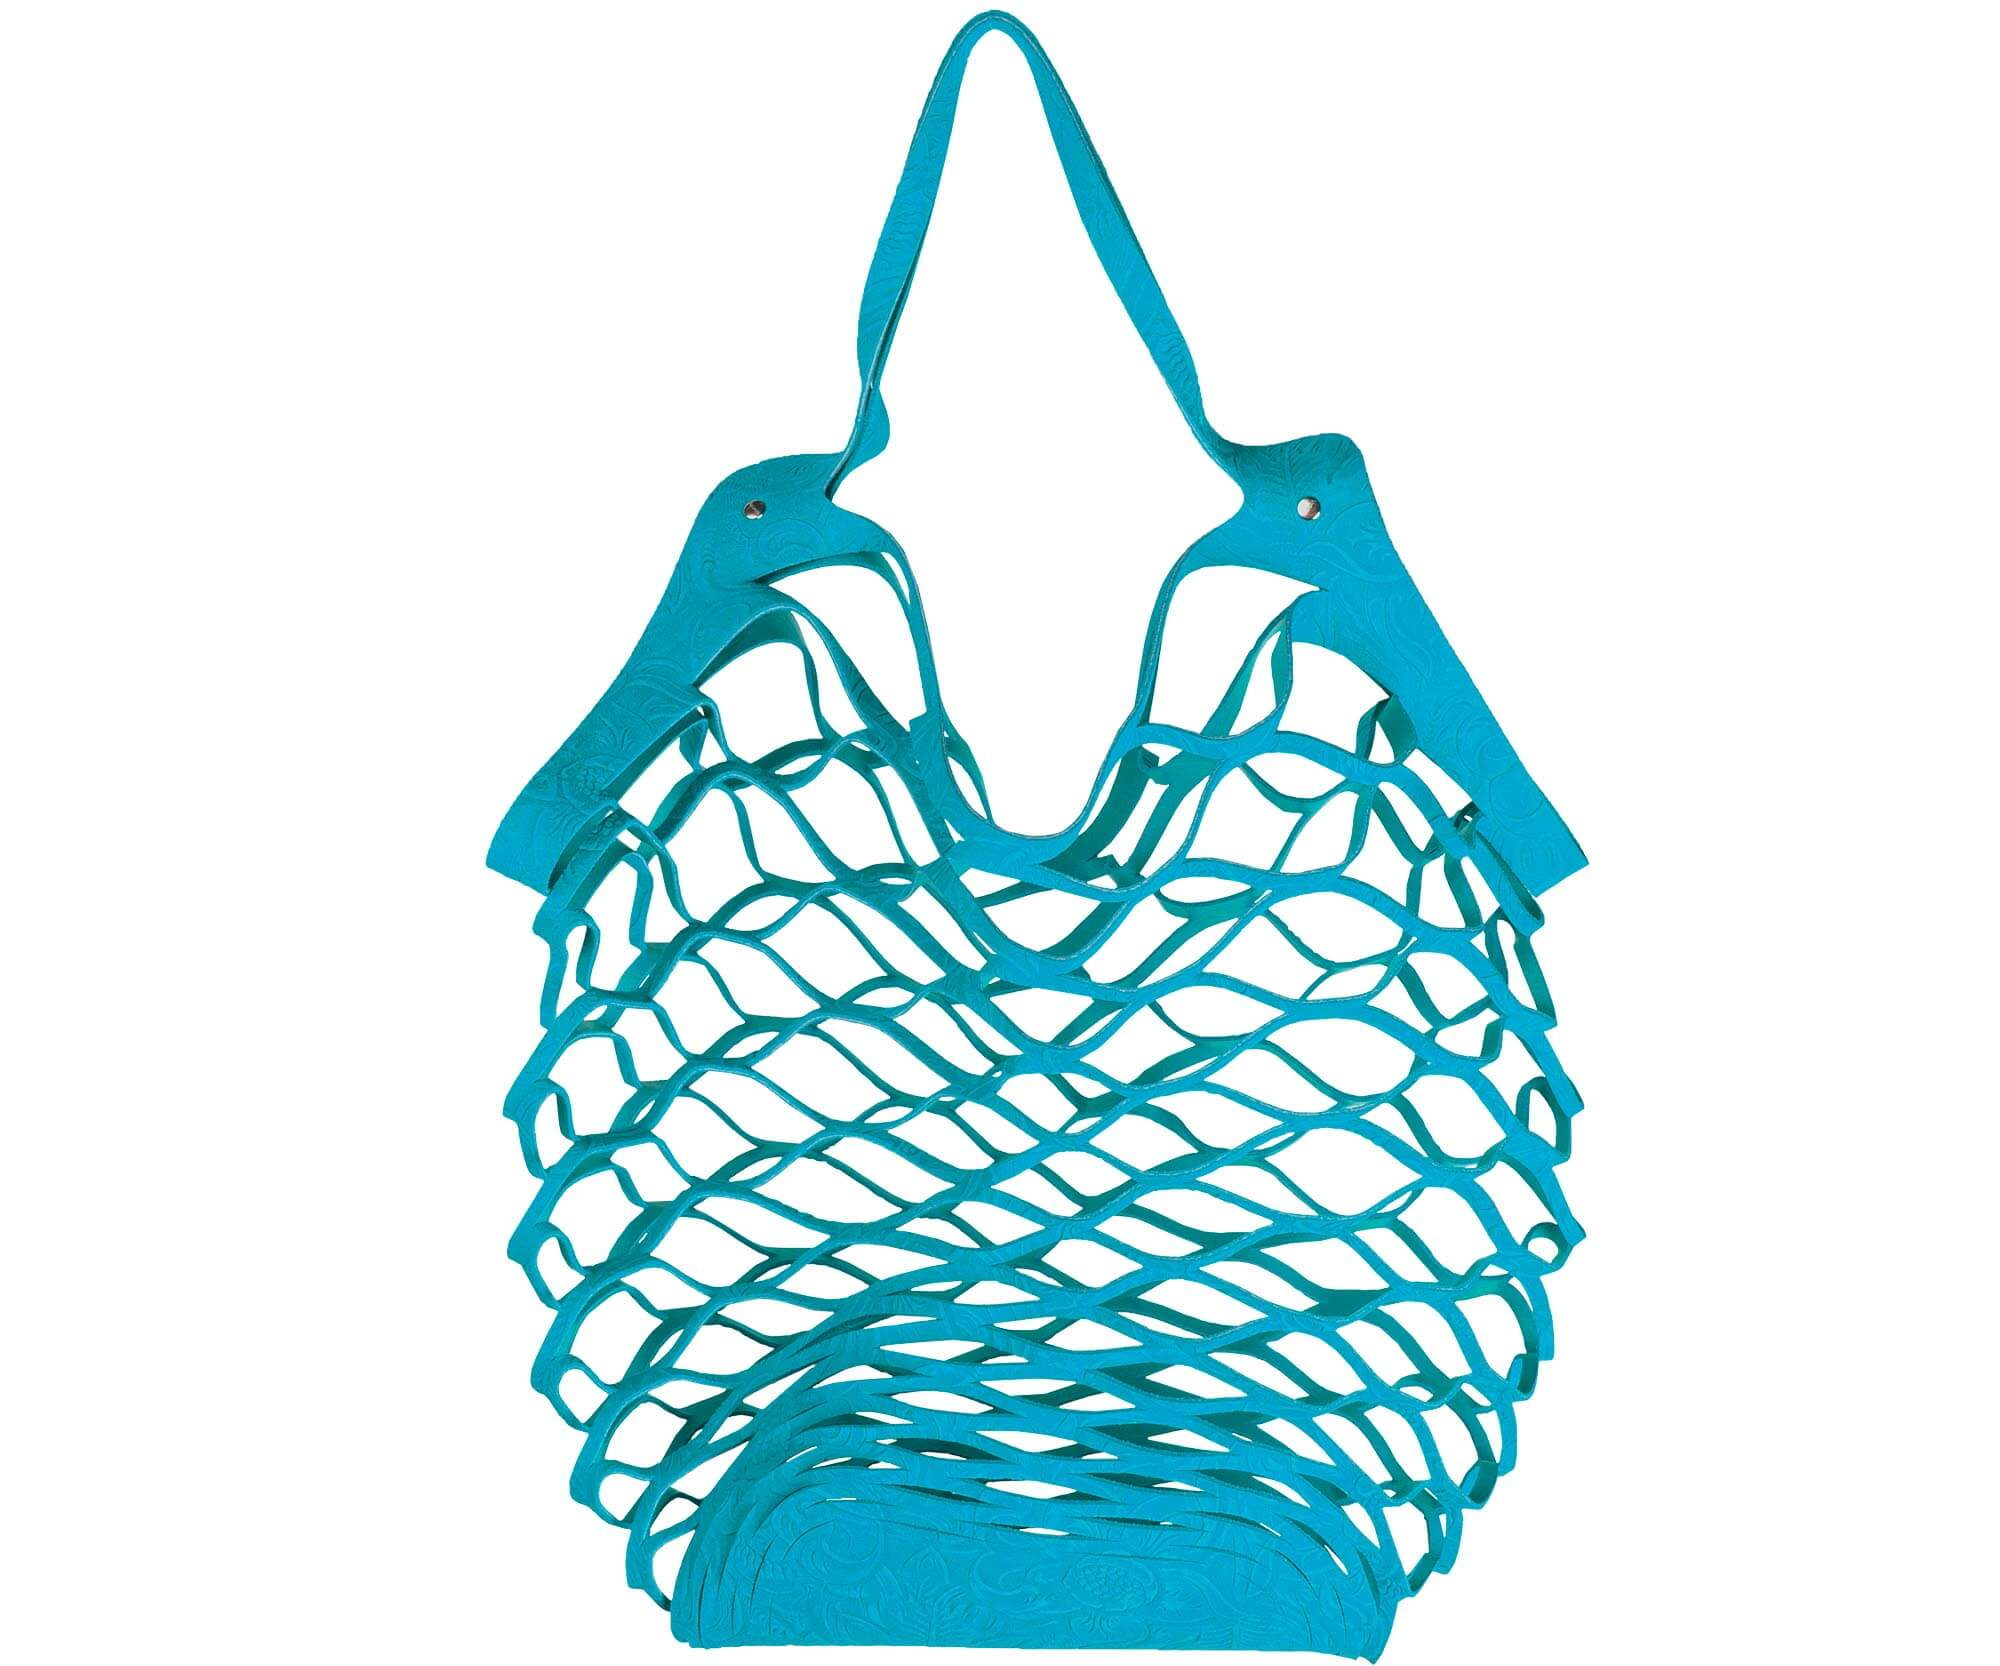 Vanzetti cut out bag blue